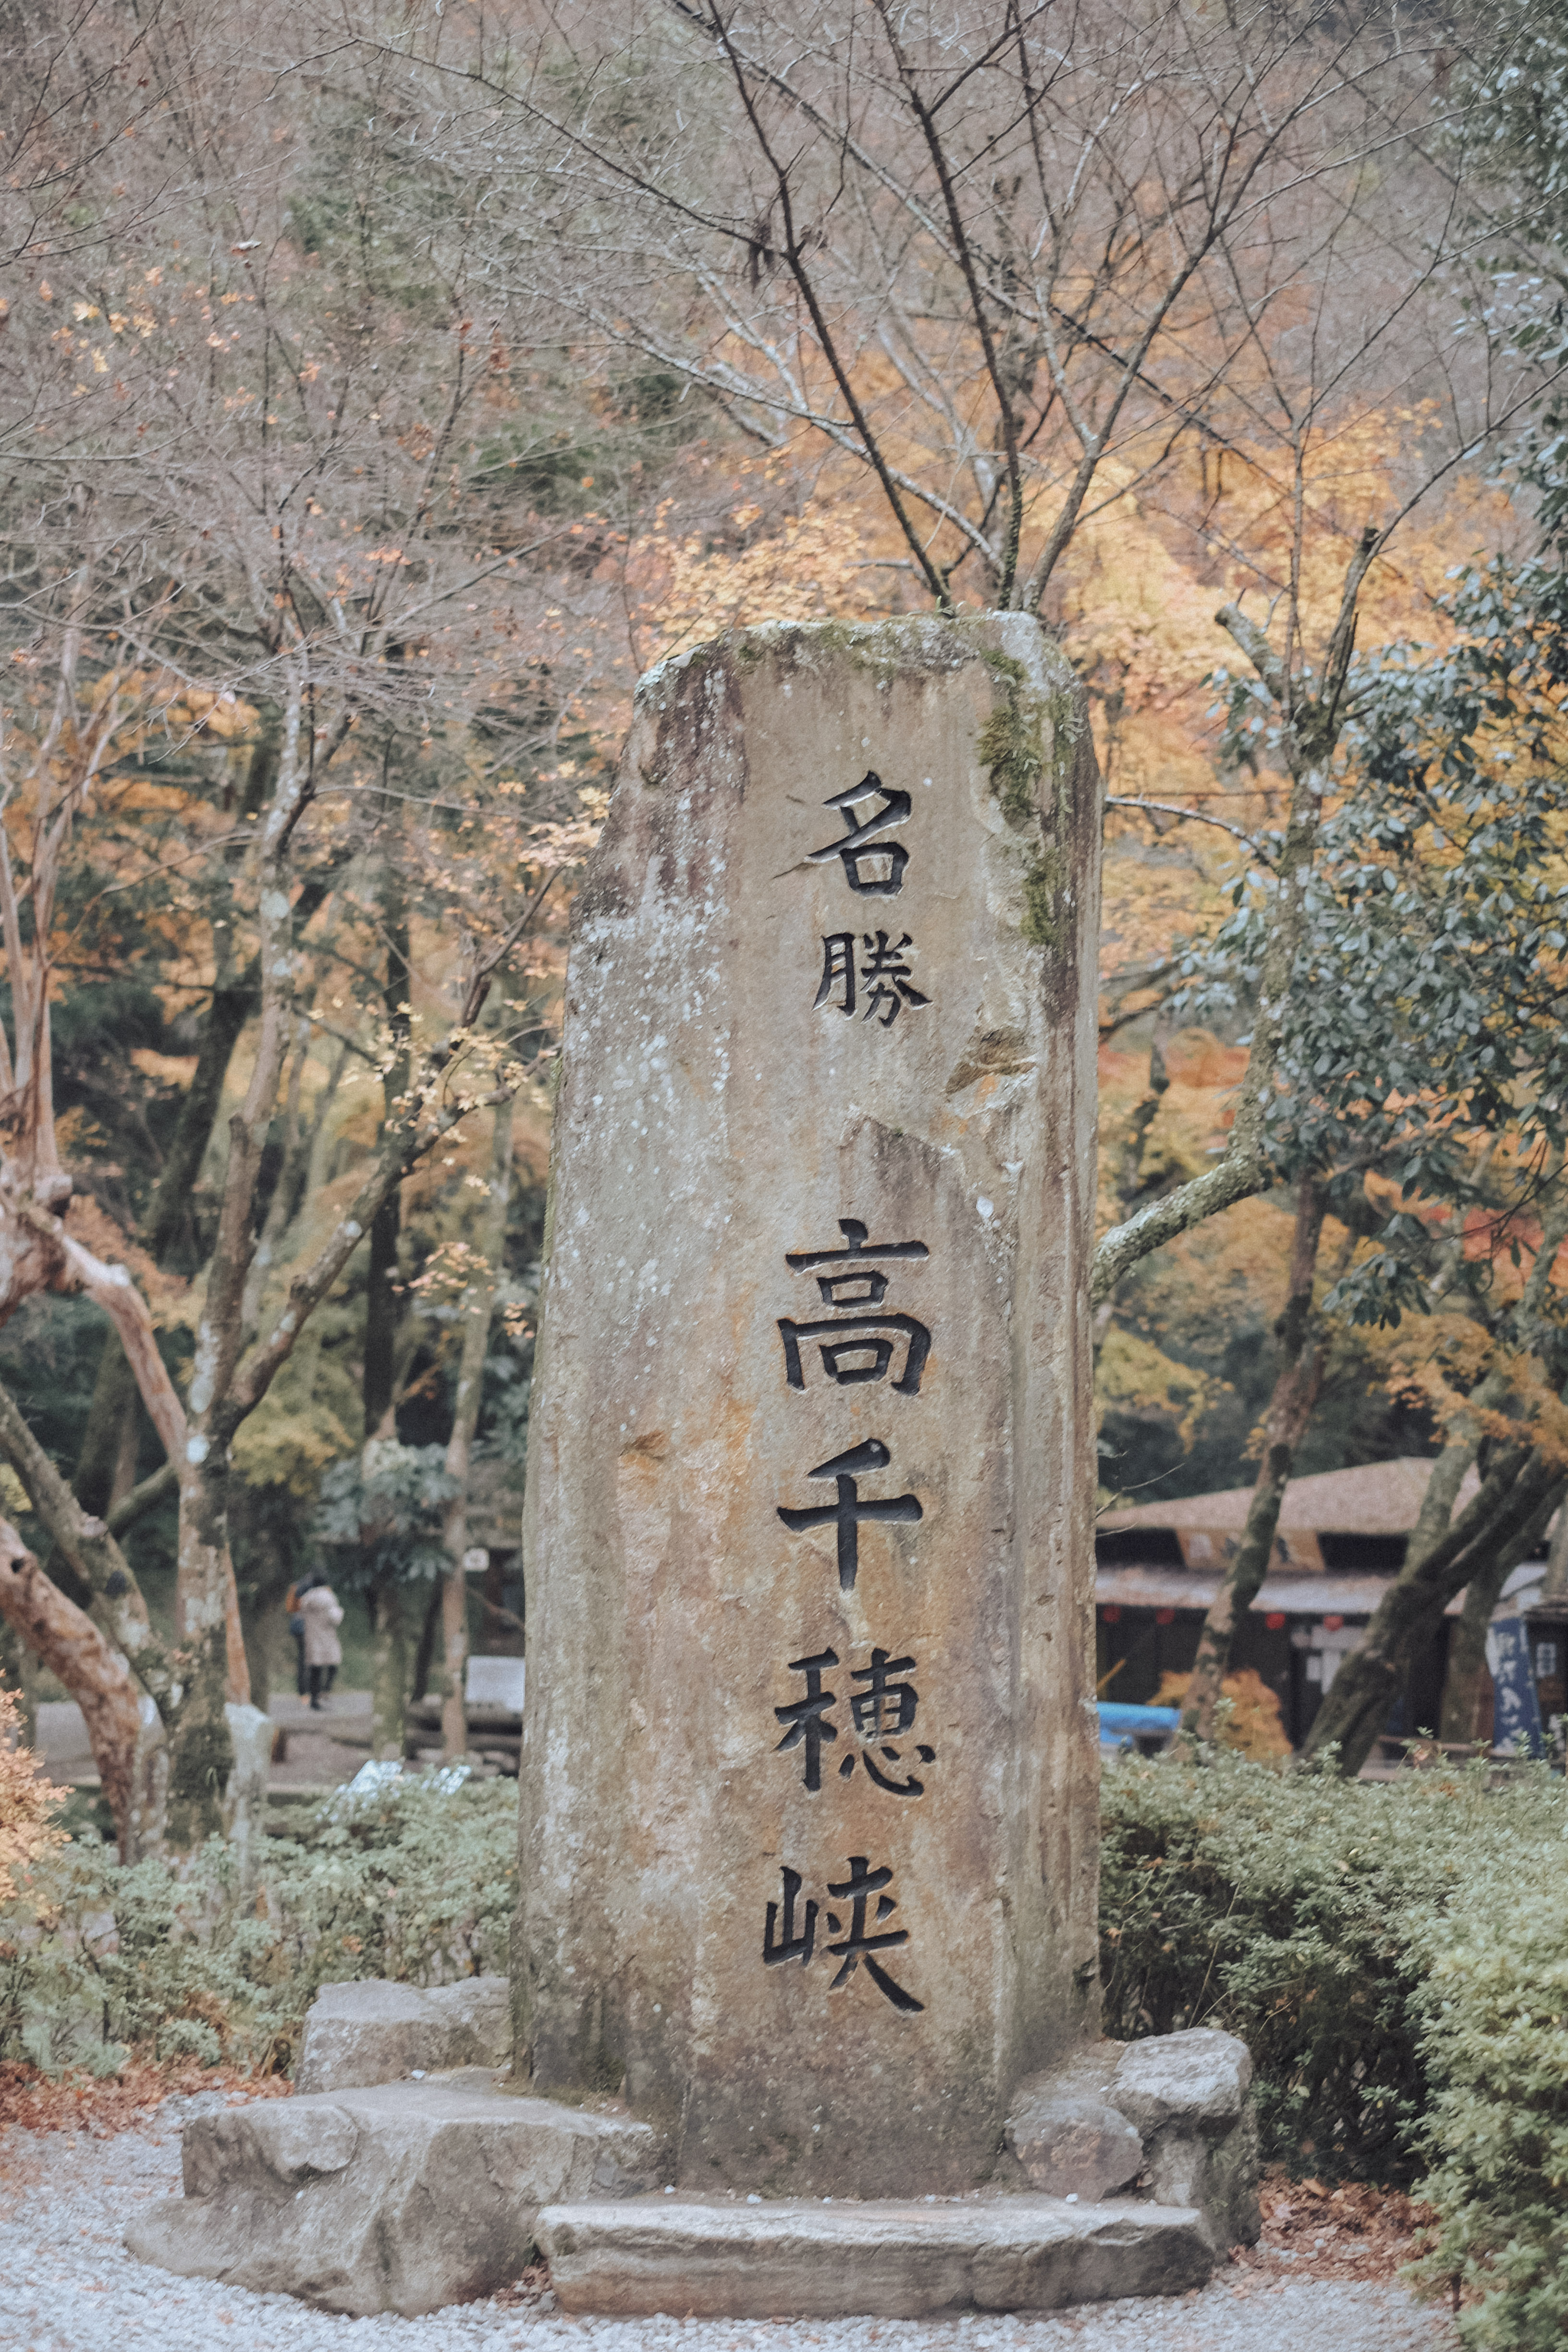 a stone monument that says Takachihokyo